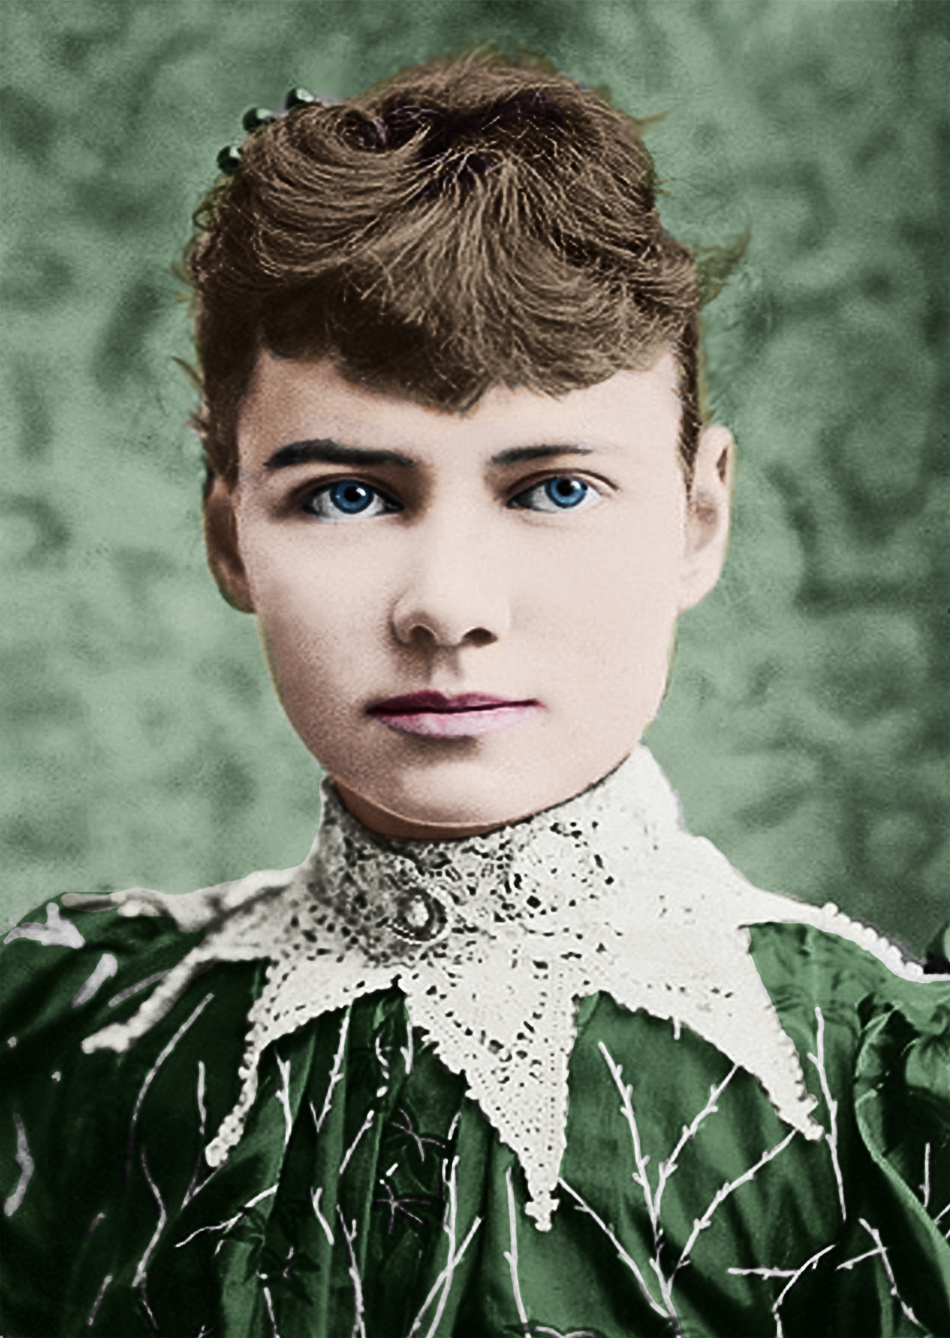 Nellie Bly was a pioneer of investigative journalism. Her    courageous undercover reporting    of the abuses experienced by patients at NYC's municipal Lunatic Asylum on Blackwell's Island eventually led to important reforms and the closing of the asylum. She is an inspiring example of what can be accomplished when someone with a social justice lens has access to a media platform.